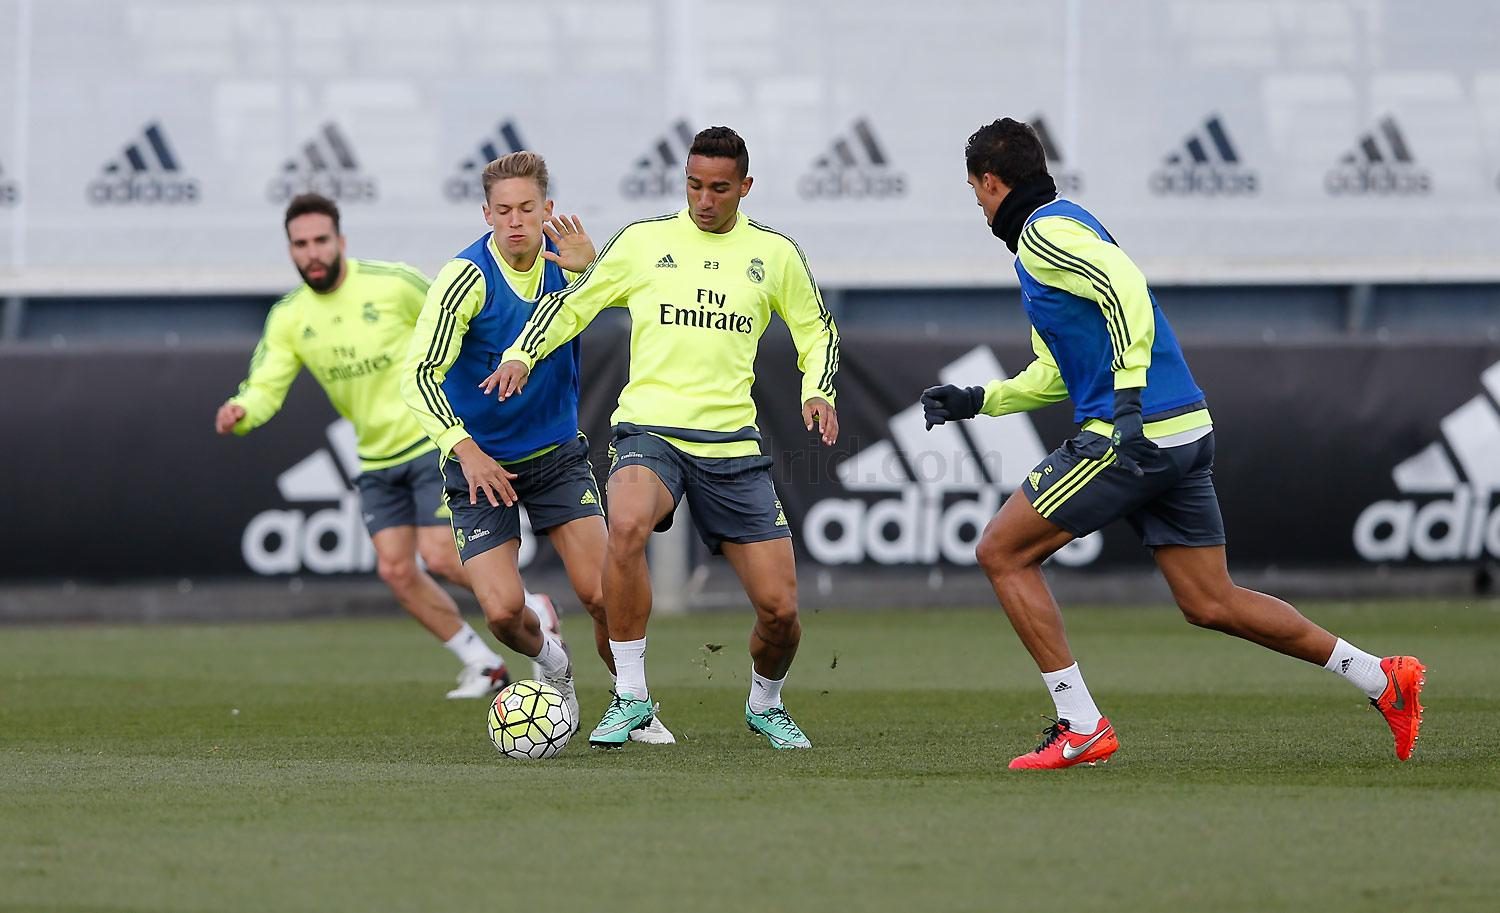 Real Madrid - Entrenamiento del Real Madrid - 10-03-2016